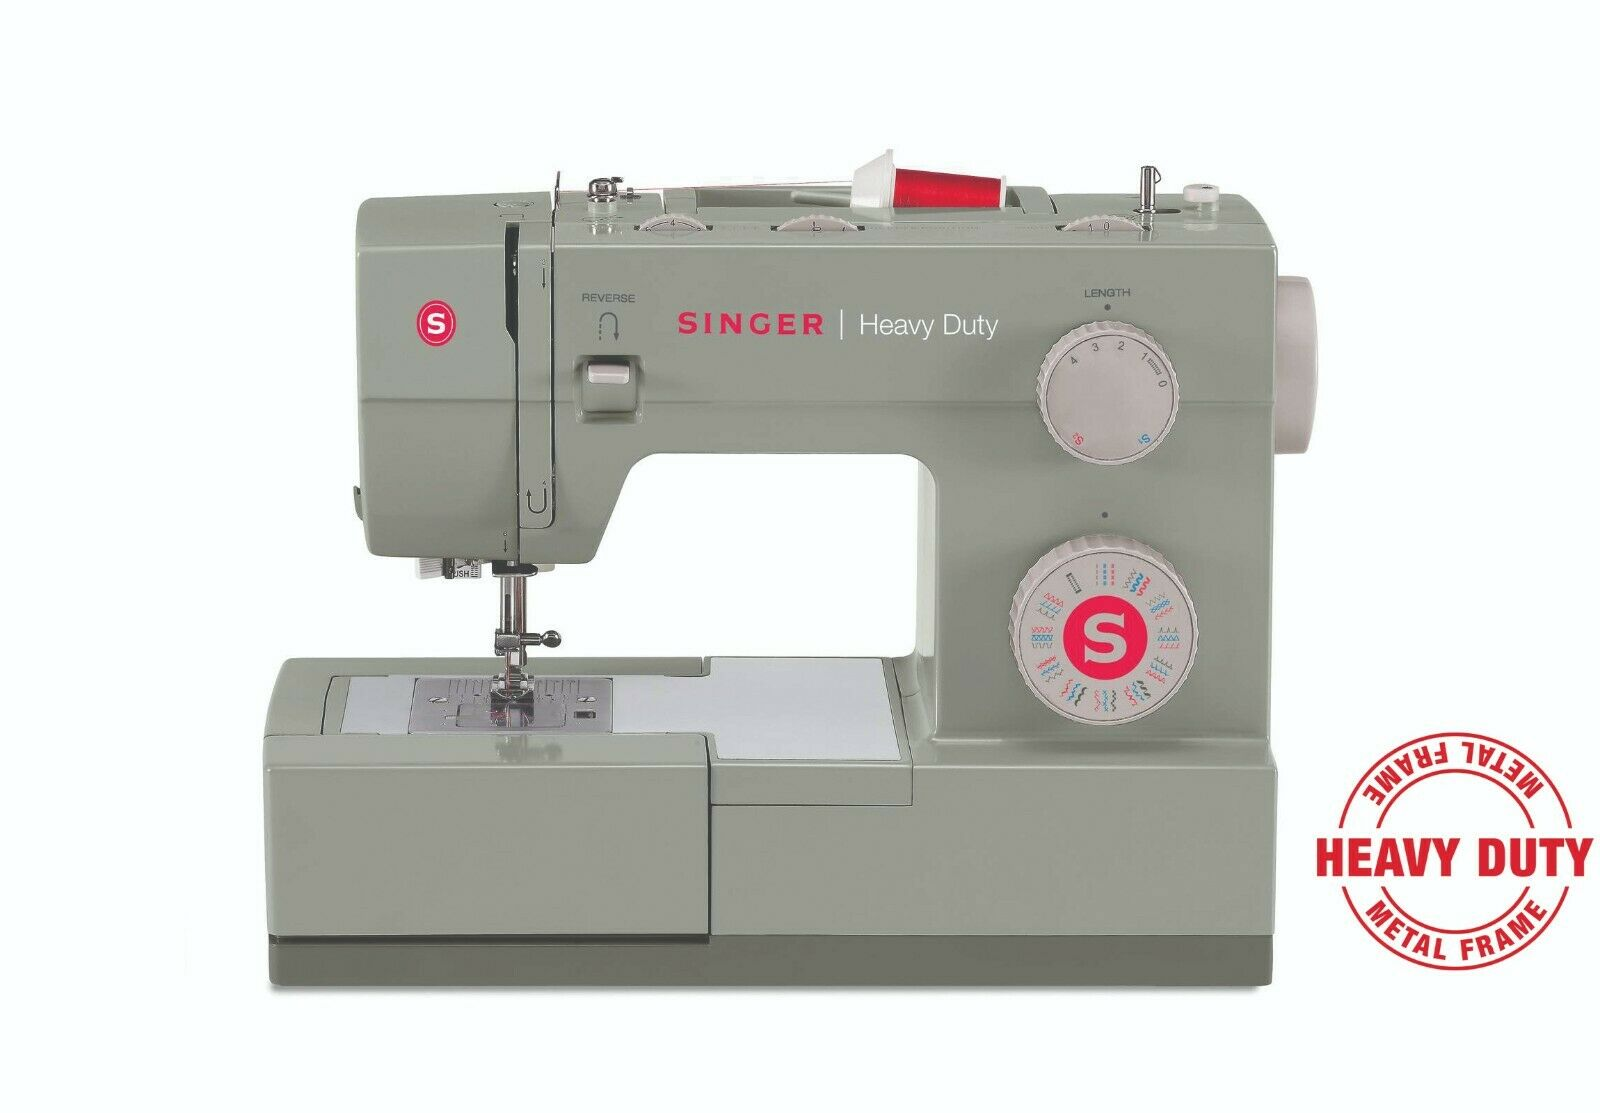 s l1600 - SINGER | Heavy Duty 4452 Sewing Machine with 110 Stitch Applications, READ DISC